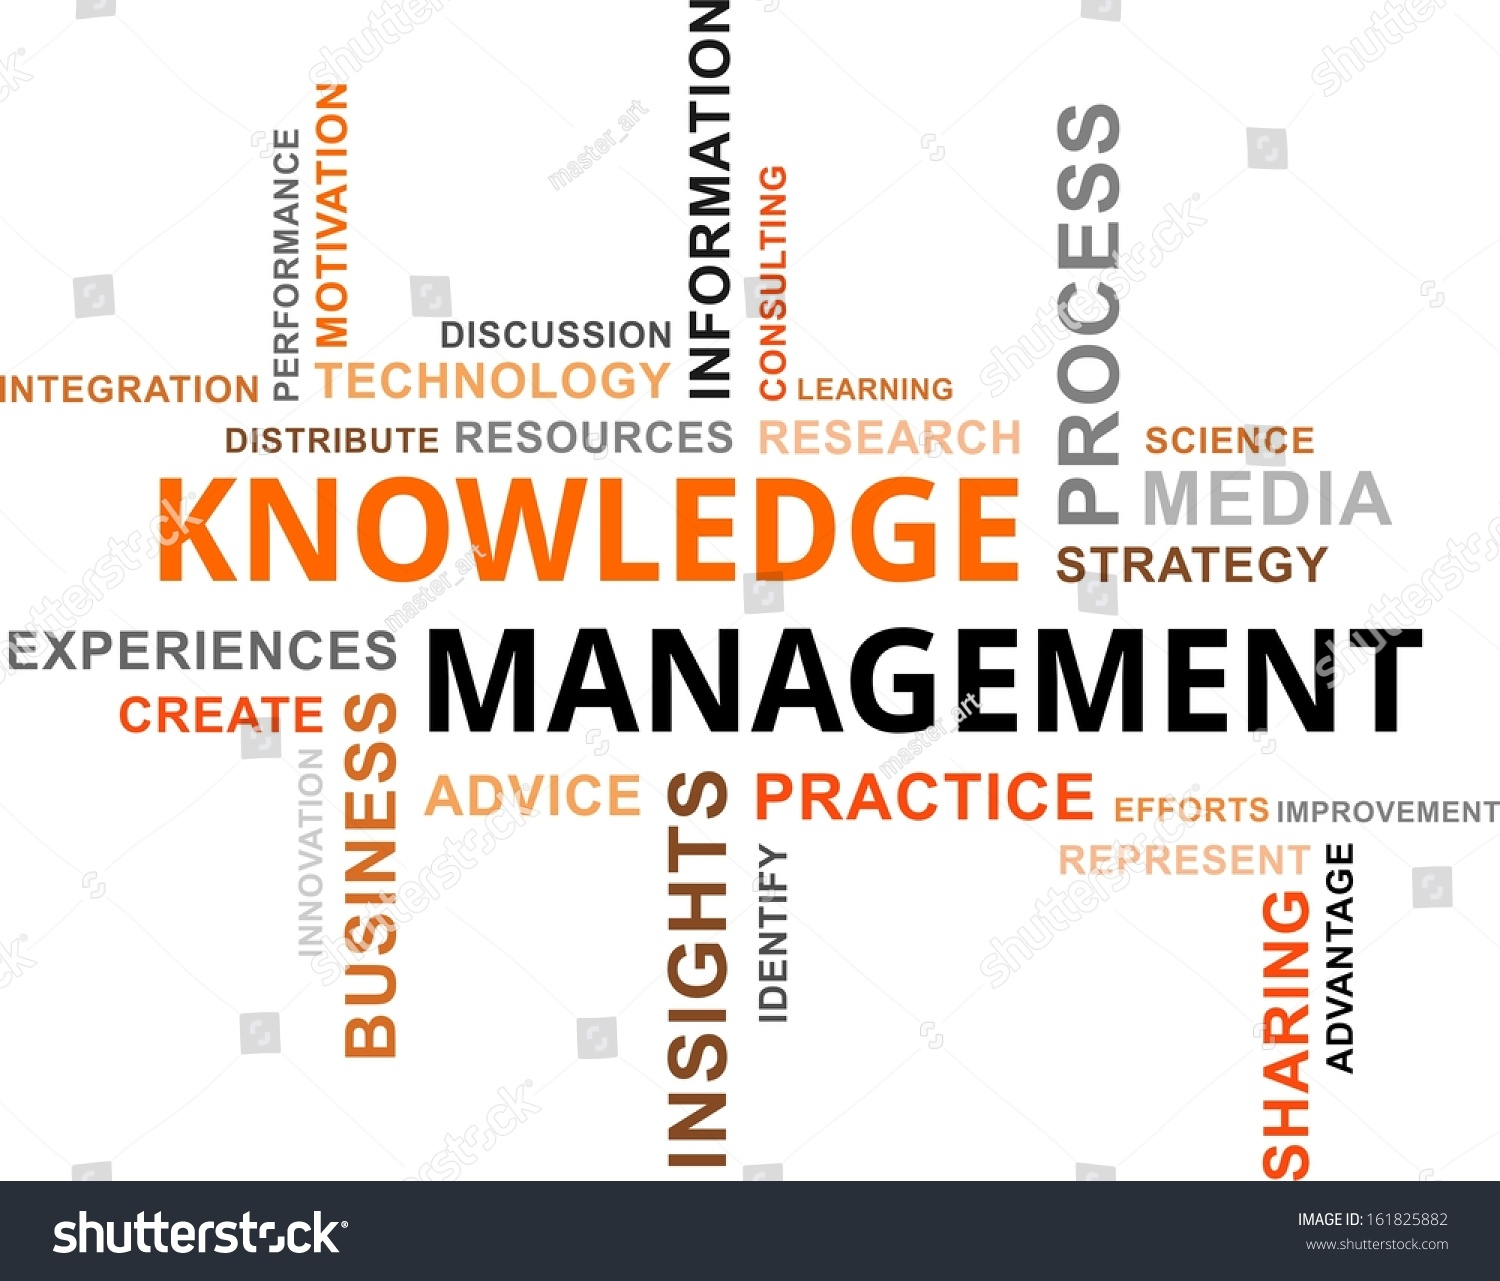 knowledge integration and management essay